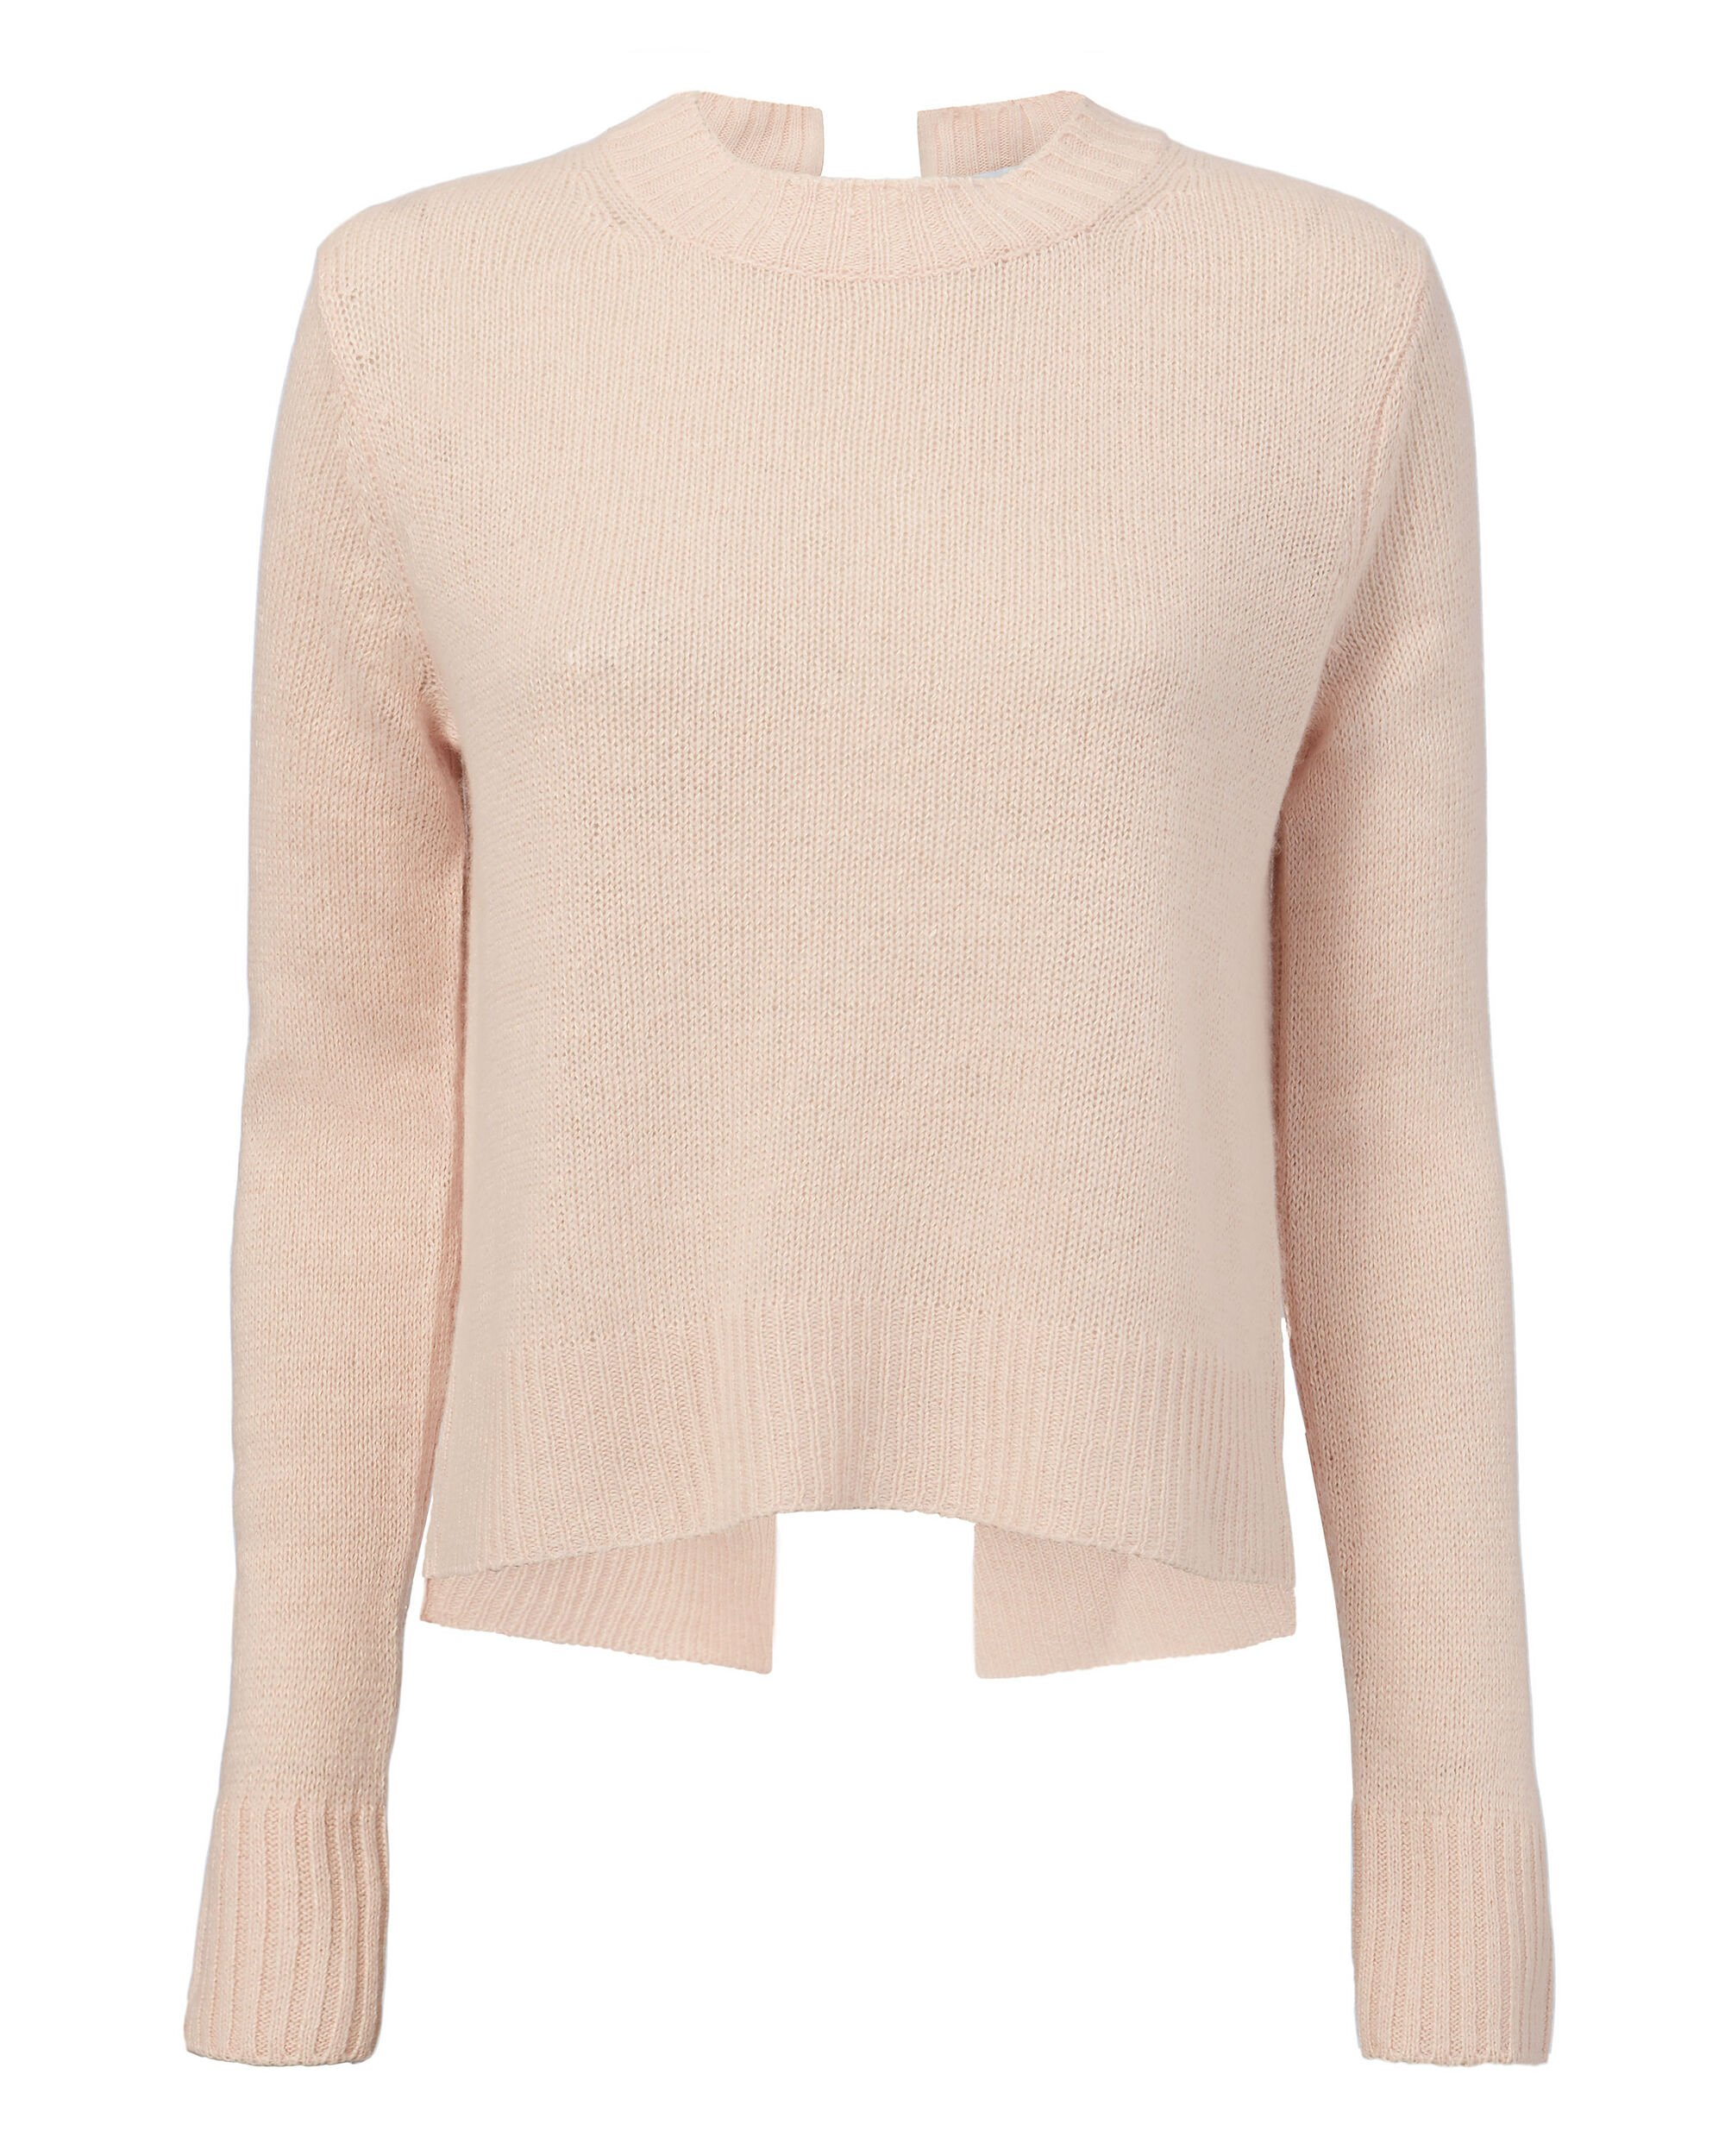 Cashmere Tie Back Sweater, PINK, hi-res